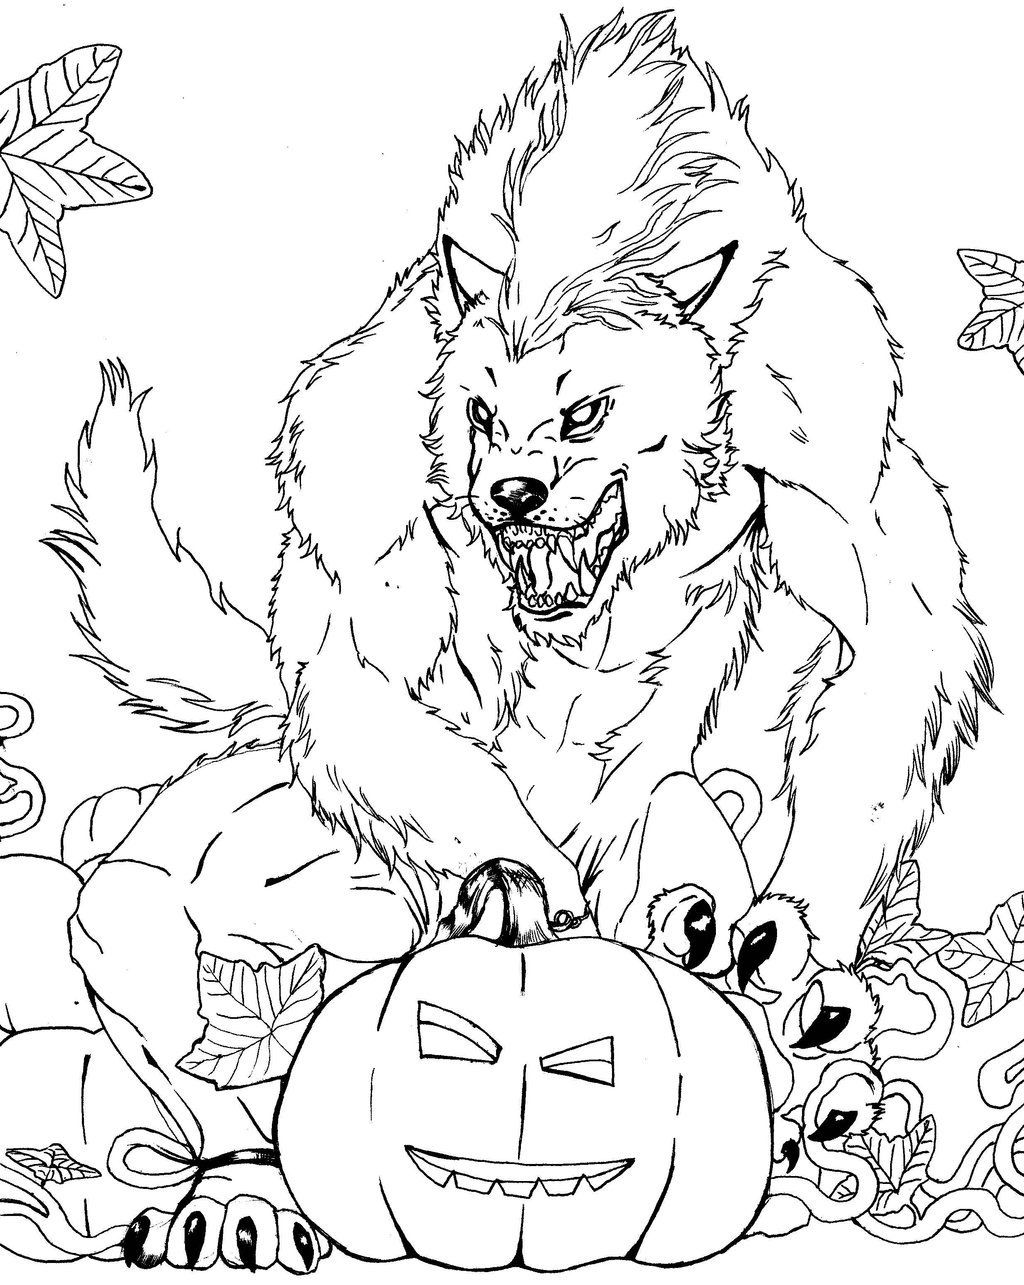 werewolf coloring pages Free Werewolf Coloring Page | Lineart: Classic Movie Monsters  werewolf coloring pages